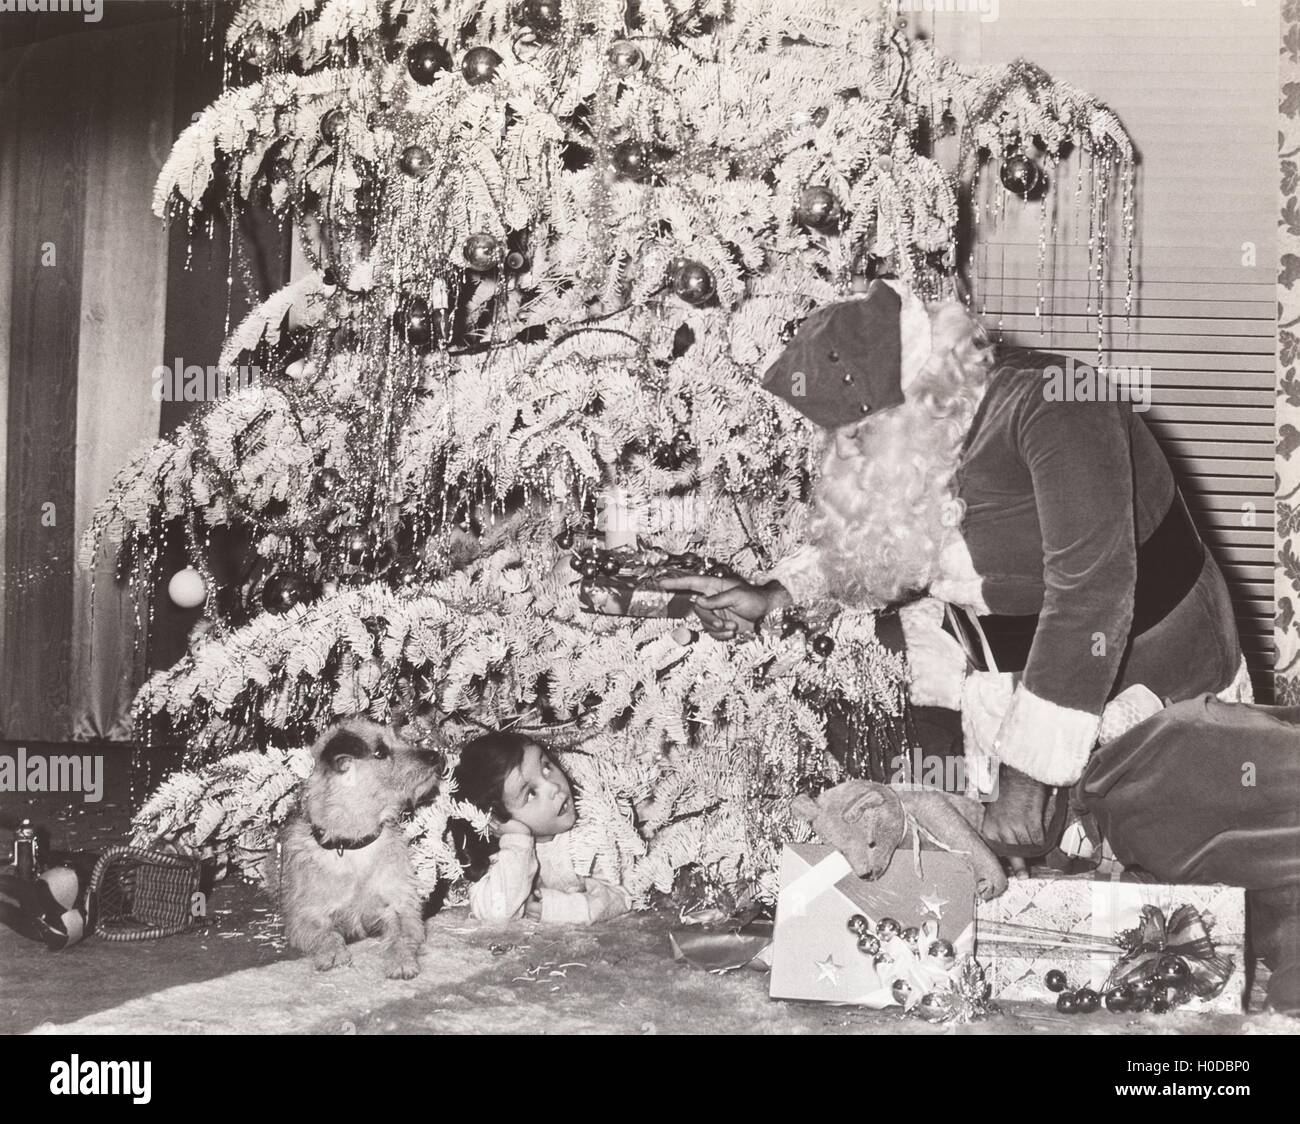 Santa Claus discovers little girl and her dog under Christmas tree - Stock Image